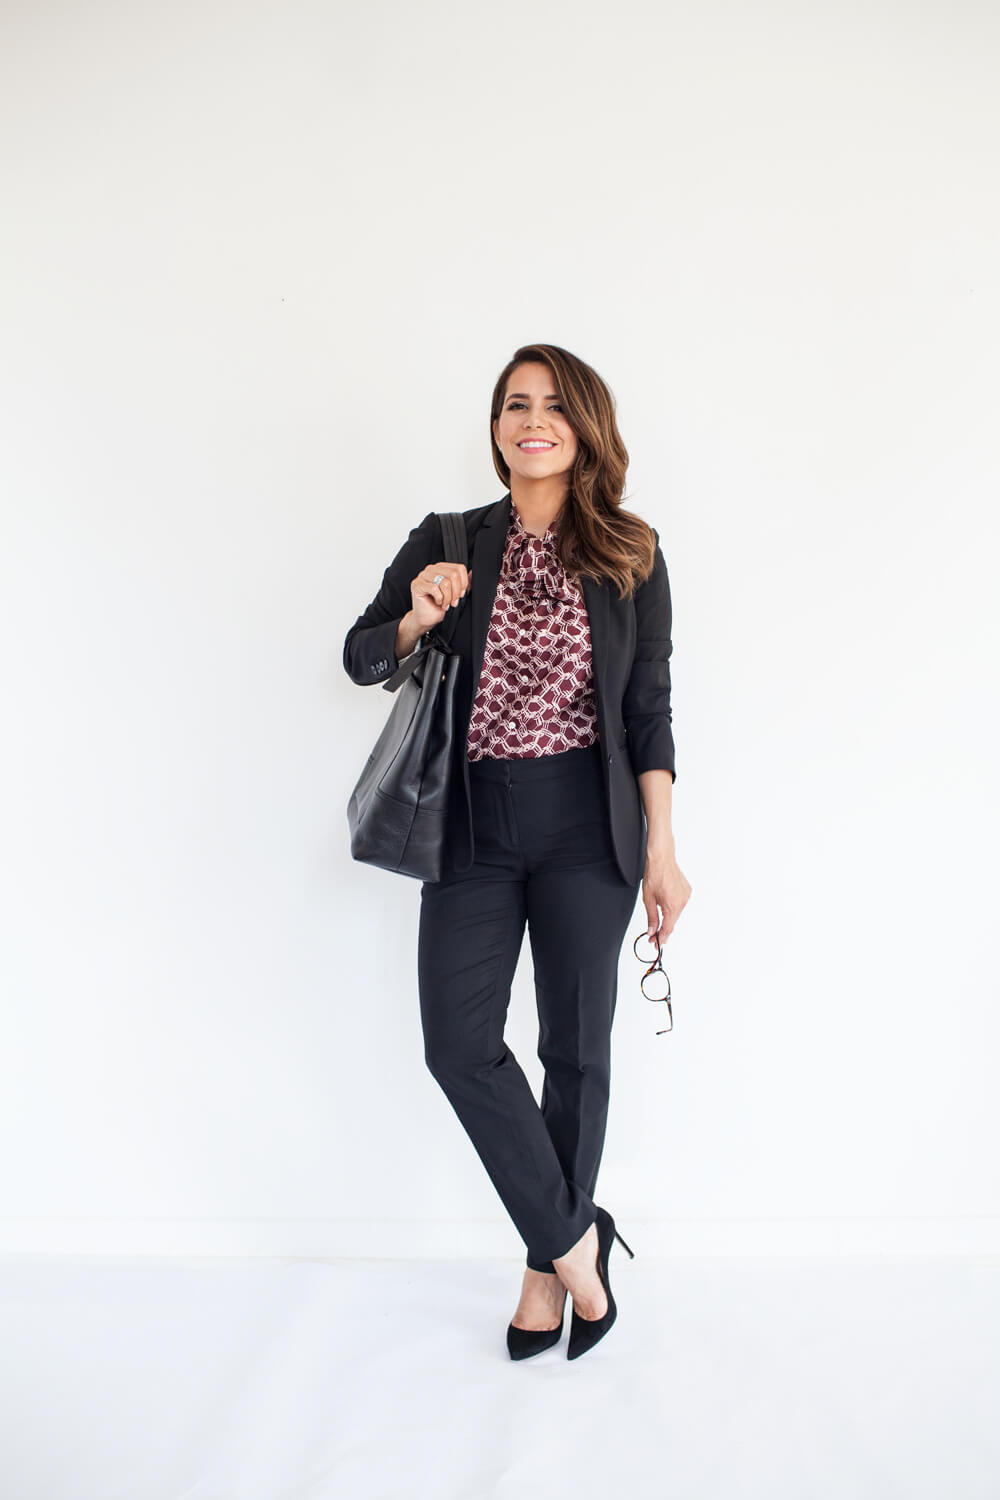 Ultimate Fall Work Wardrobe Capsule Collection Jcrew black leather bag staple pieces outfit ideas New york nyc fashion blogger corporate catwalk13